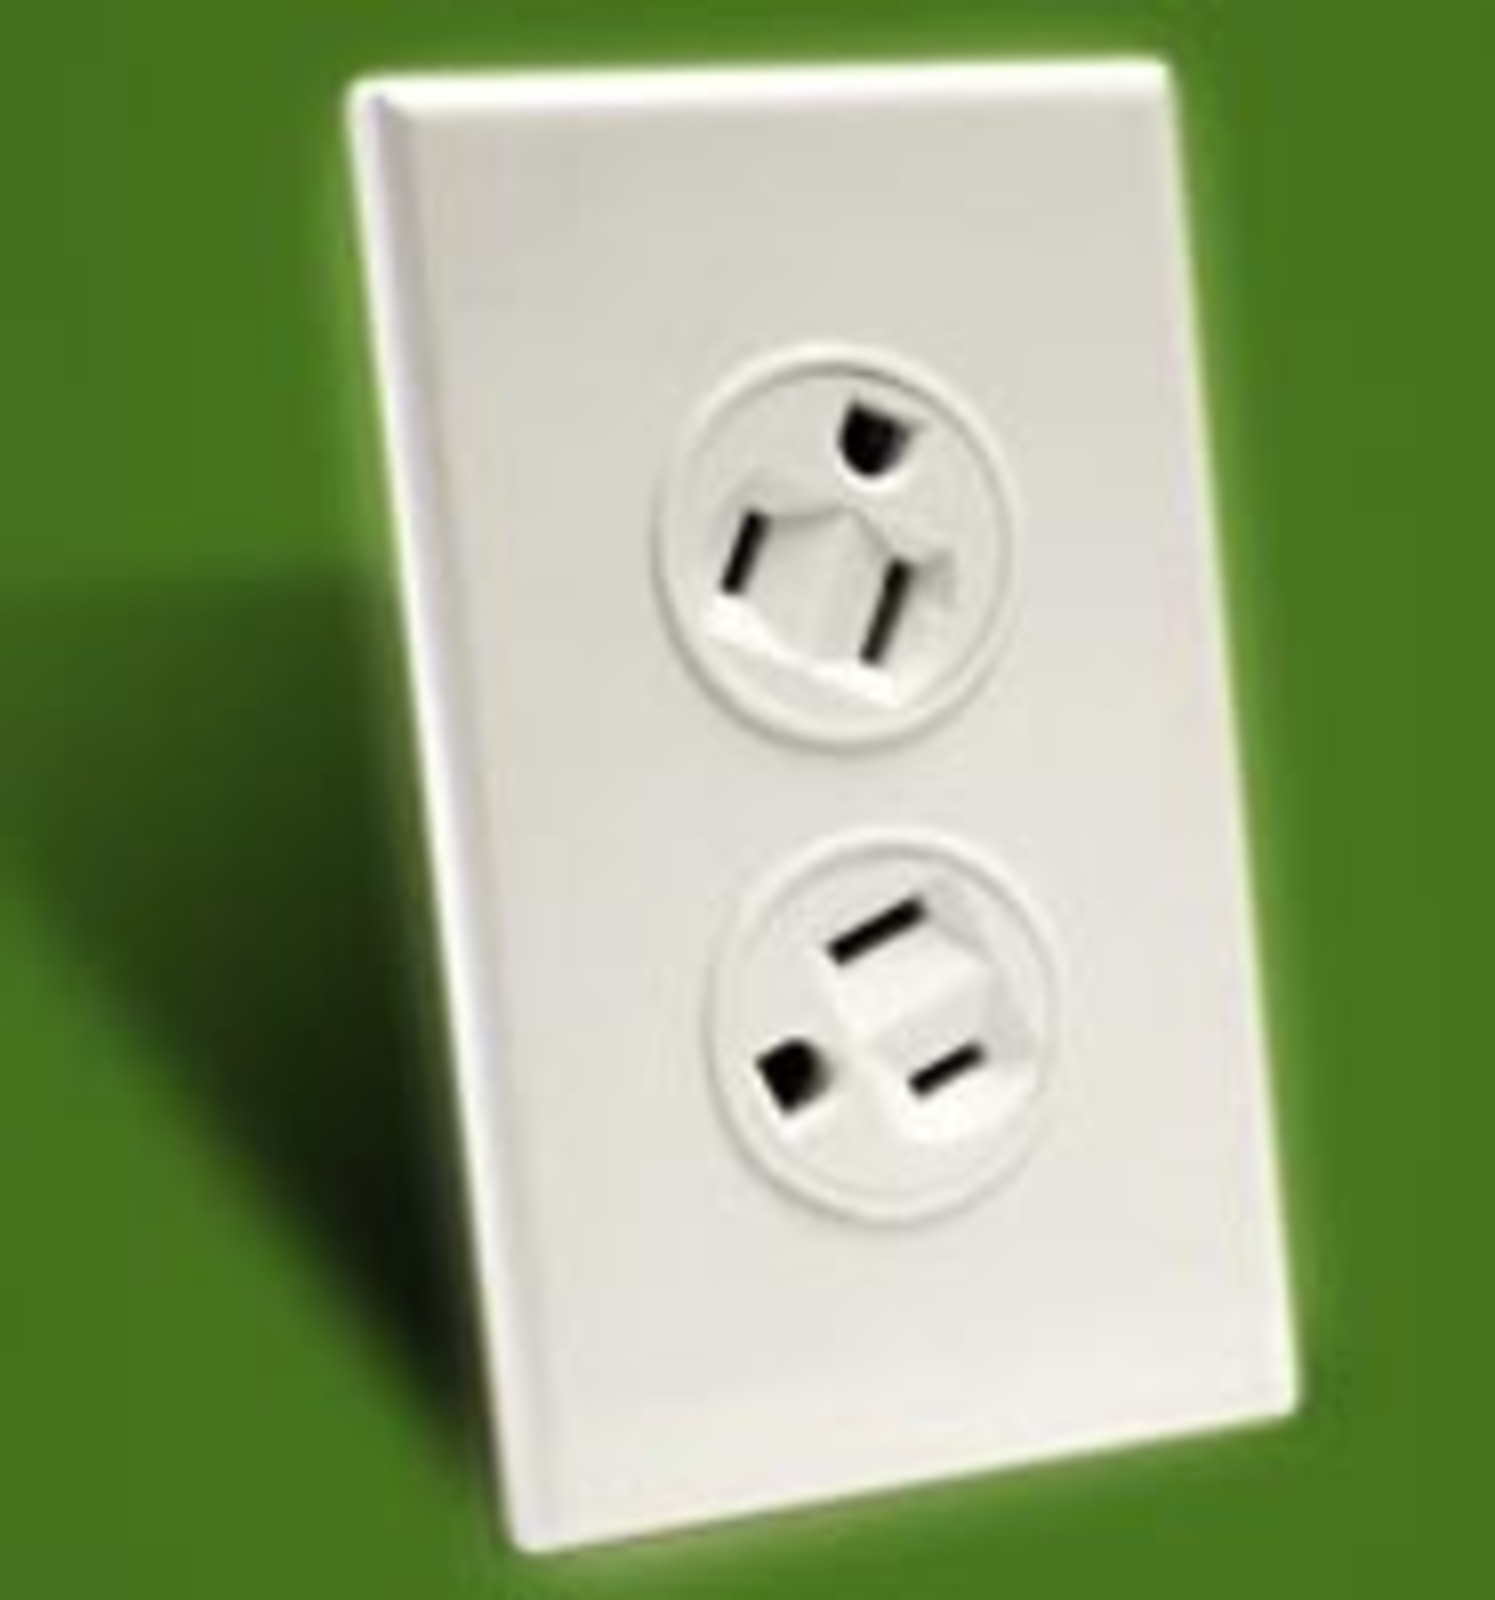 Cool Electrical Outlets 360 Degree Plug Outlets Cool Hunting